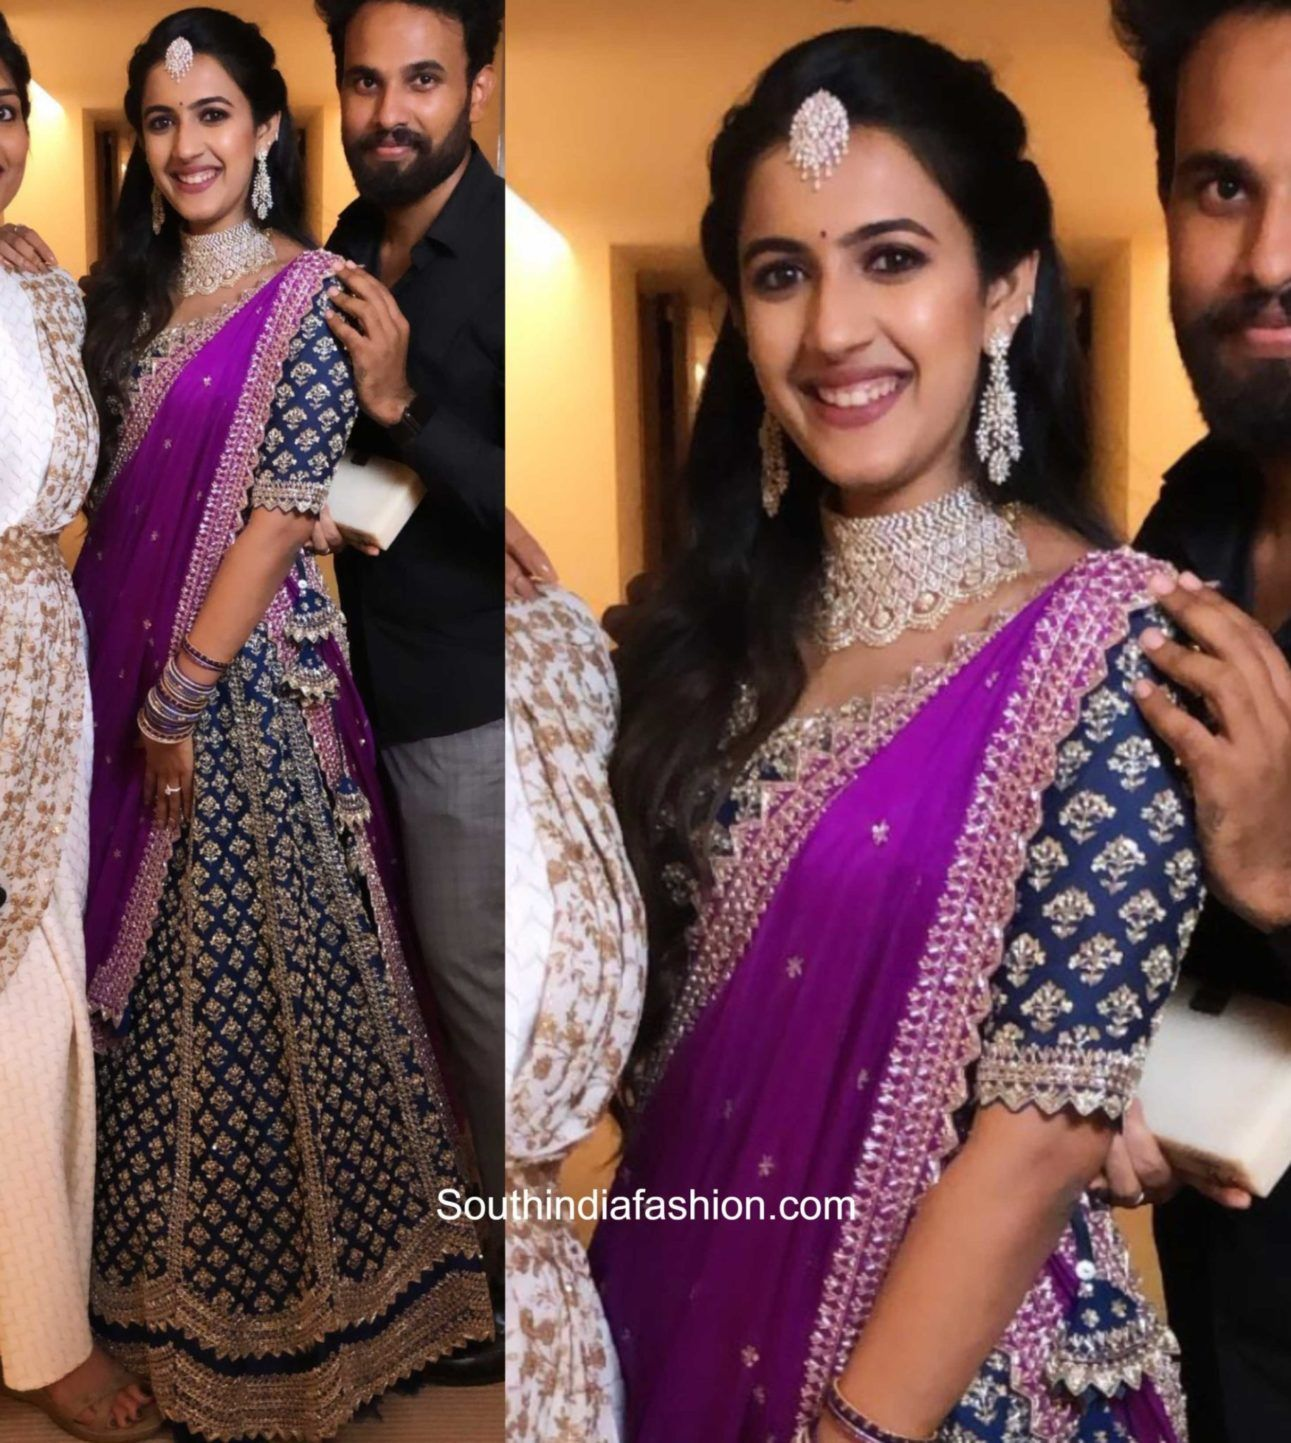 Niharika Konidela got engaged to Chaitanya Jonnalagadda